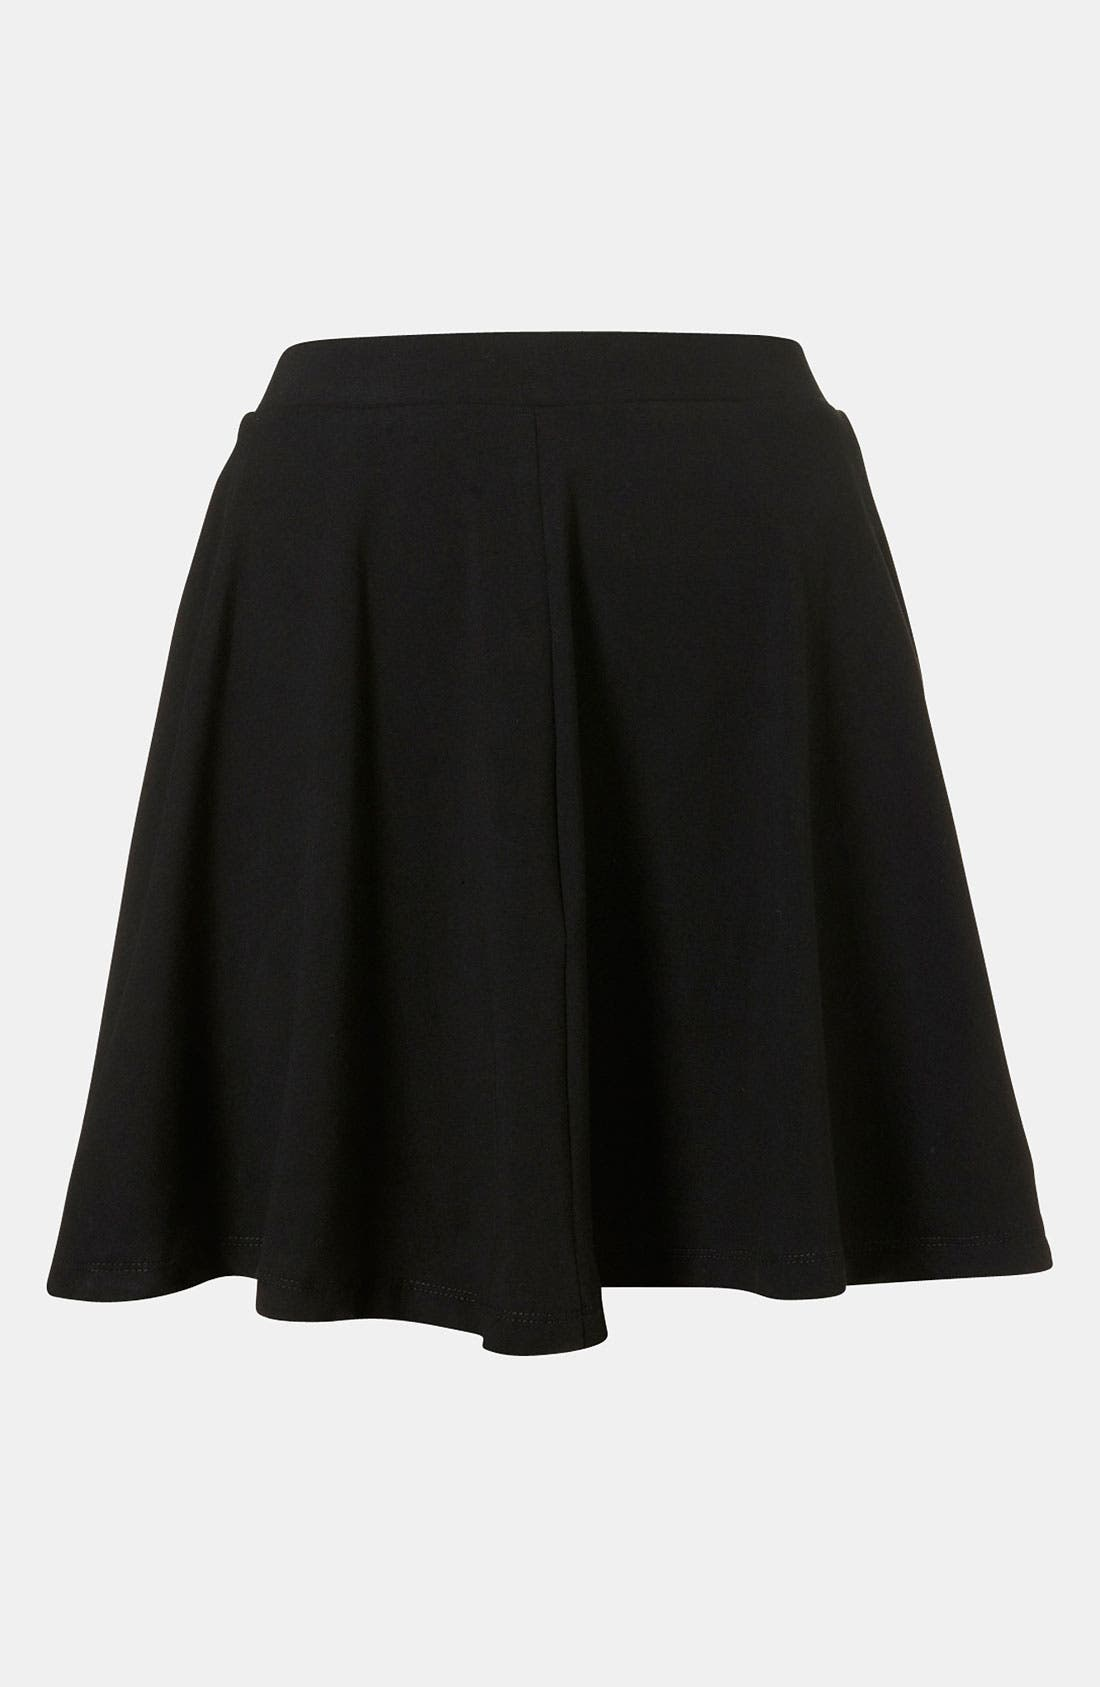 Alternate Image 1 Selected - Topshop 'Andie' Skater Skirt